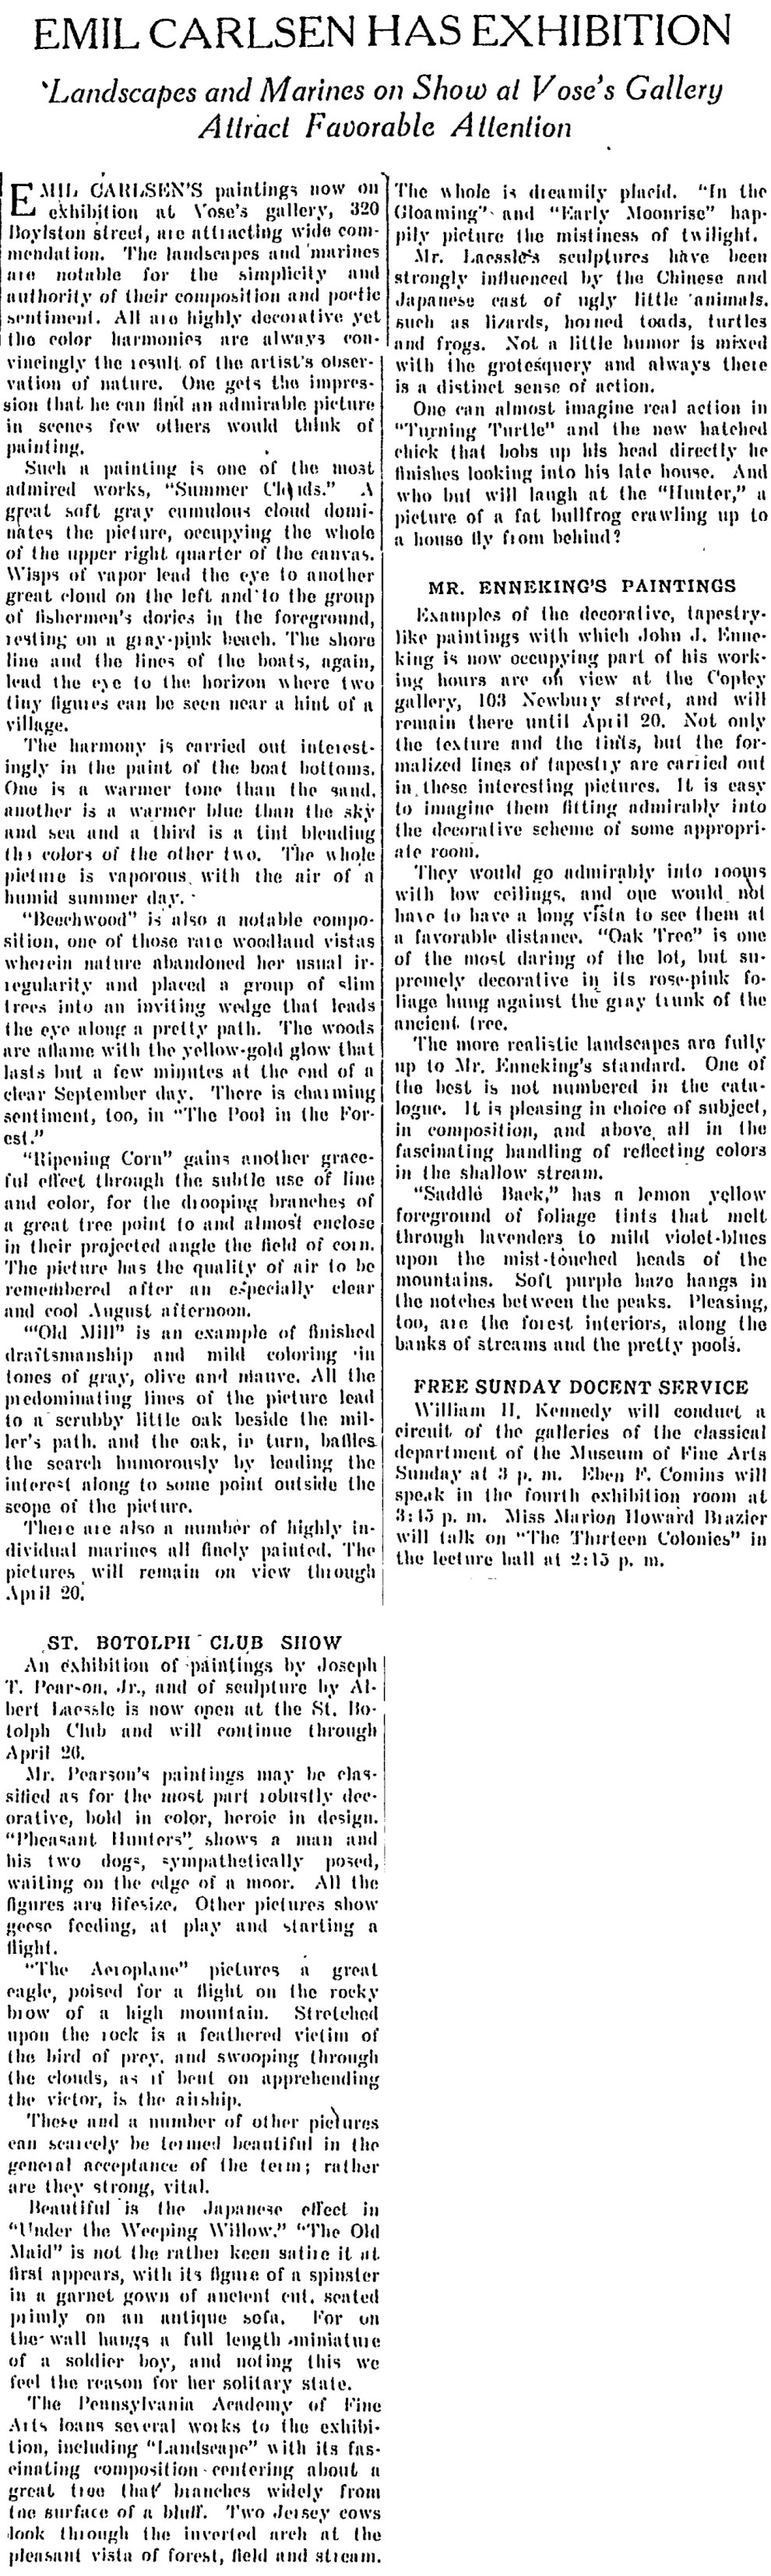 """The Christian Science Monitor, New York, NY, """"Emil Carlsen Has Exhibition"""", April 13, 1912, page 6, not illustrated"""